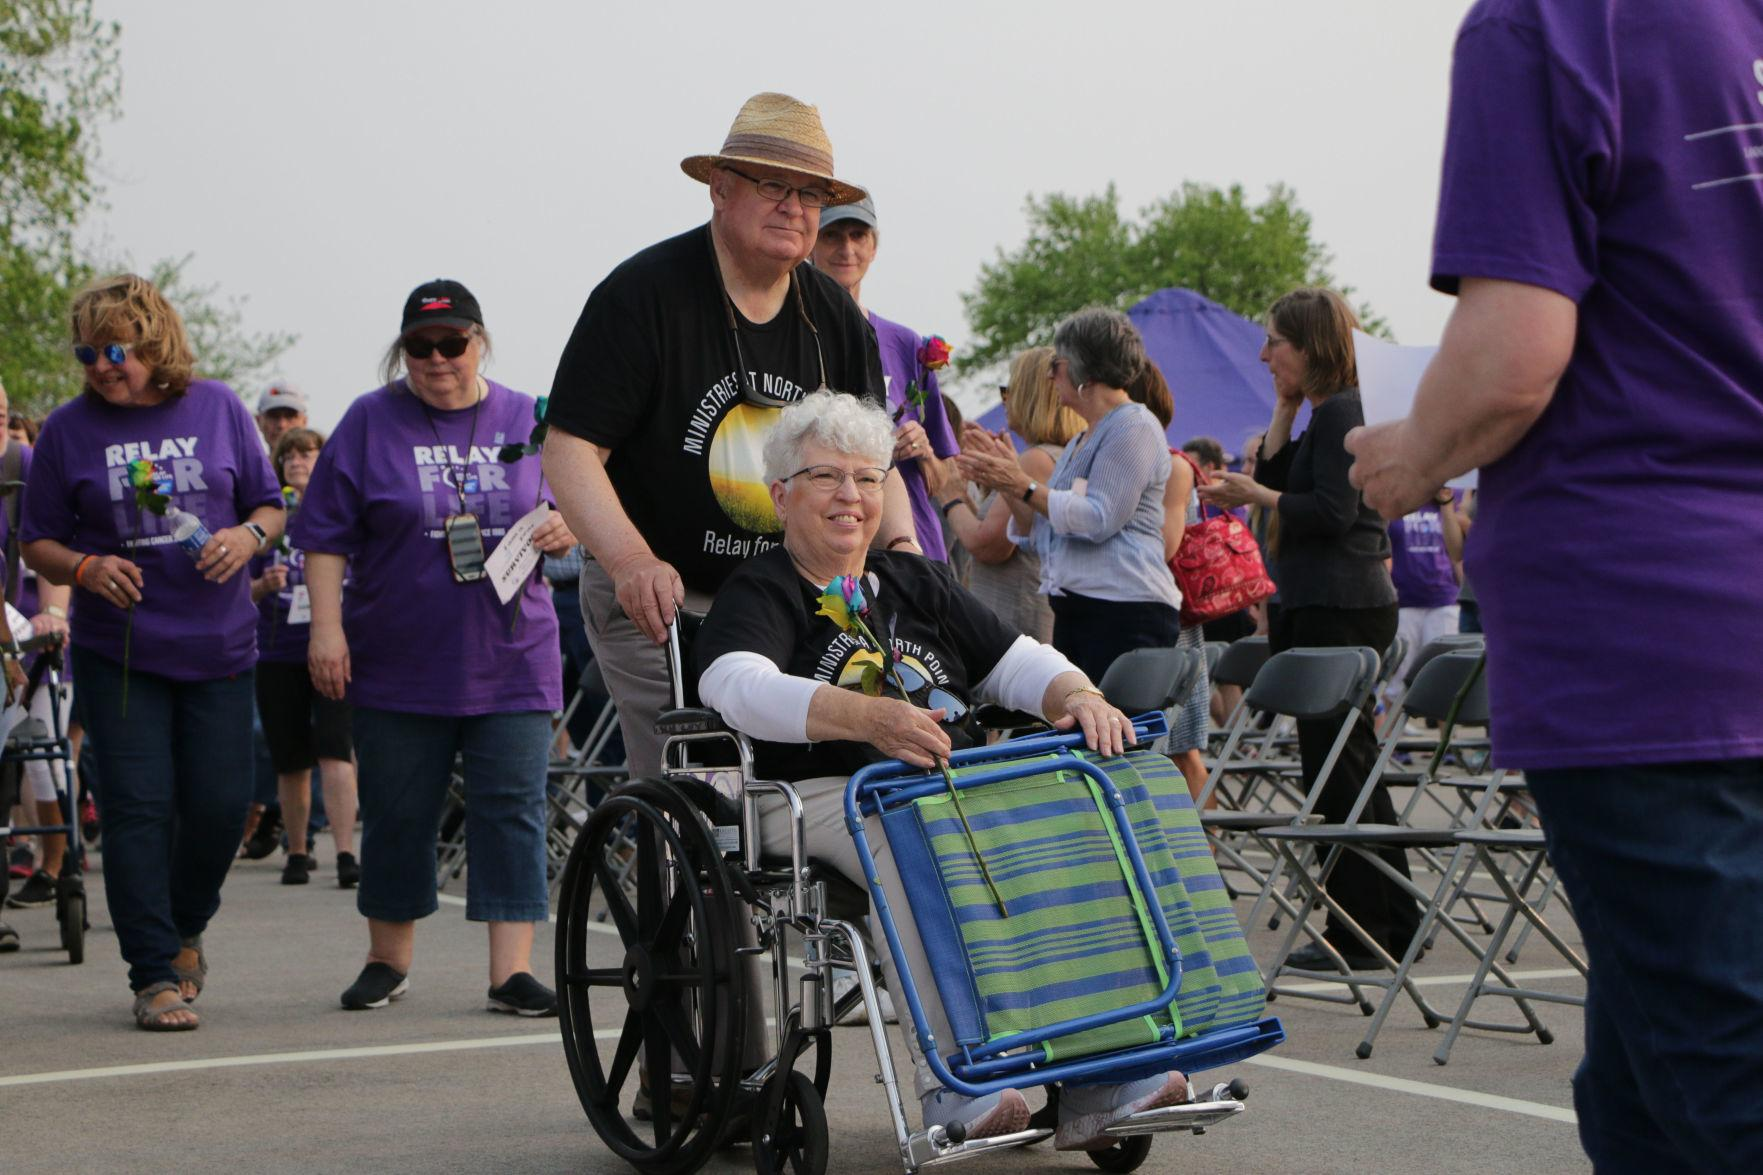 Relay For Life survivors take first lap